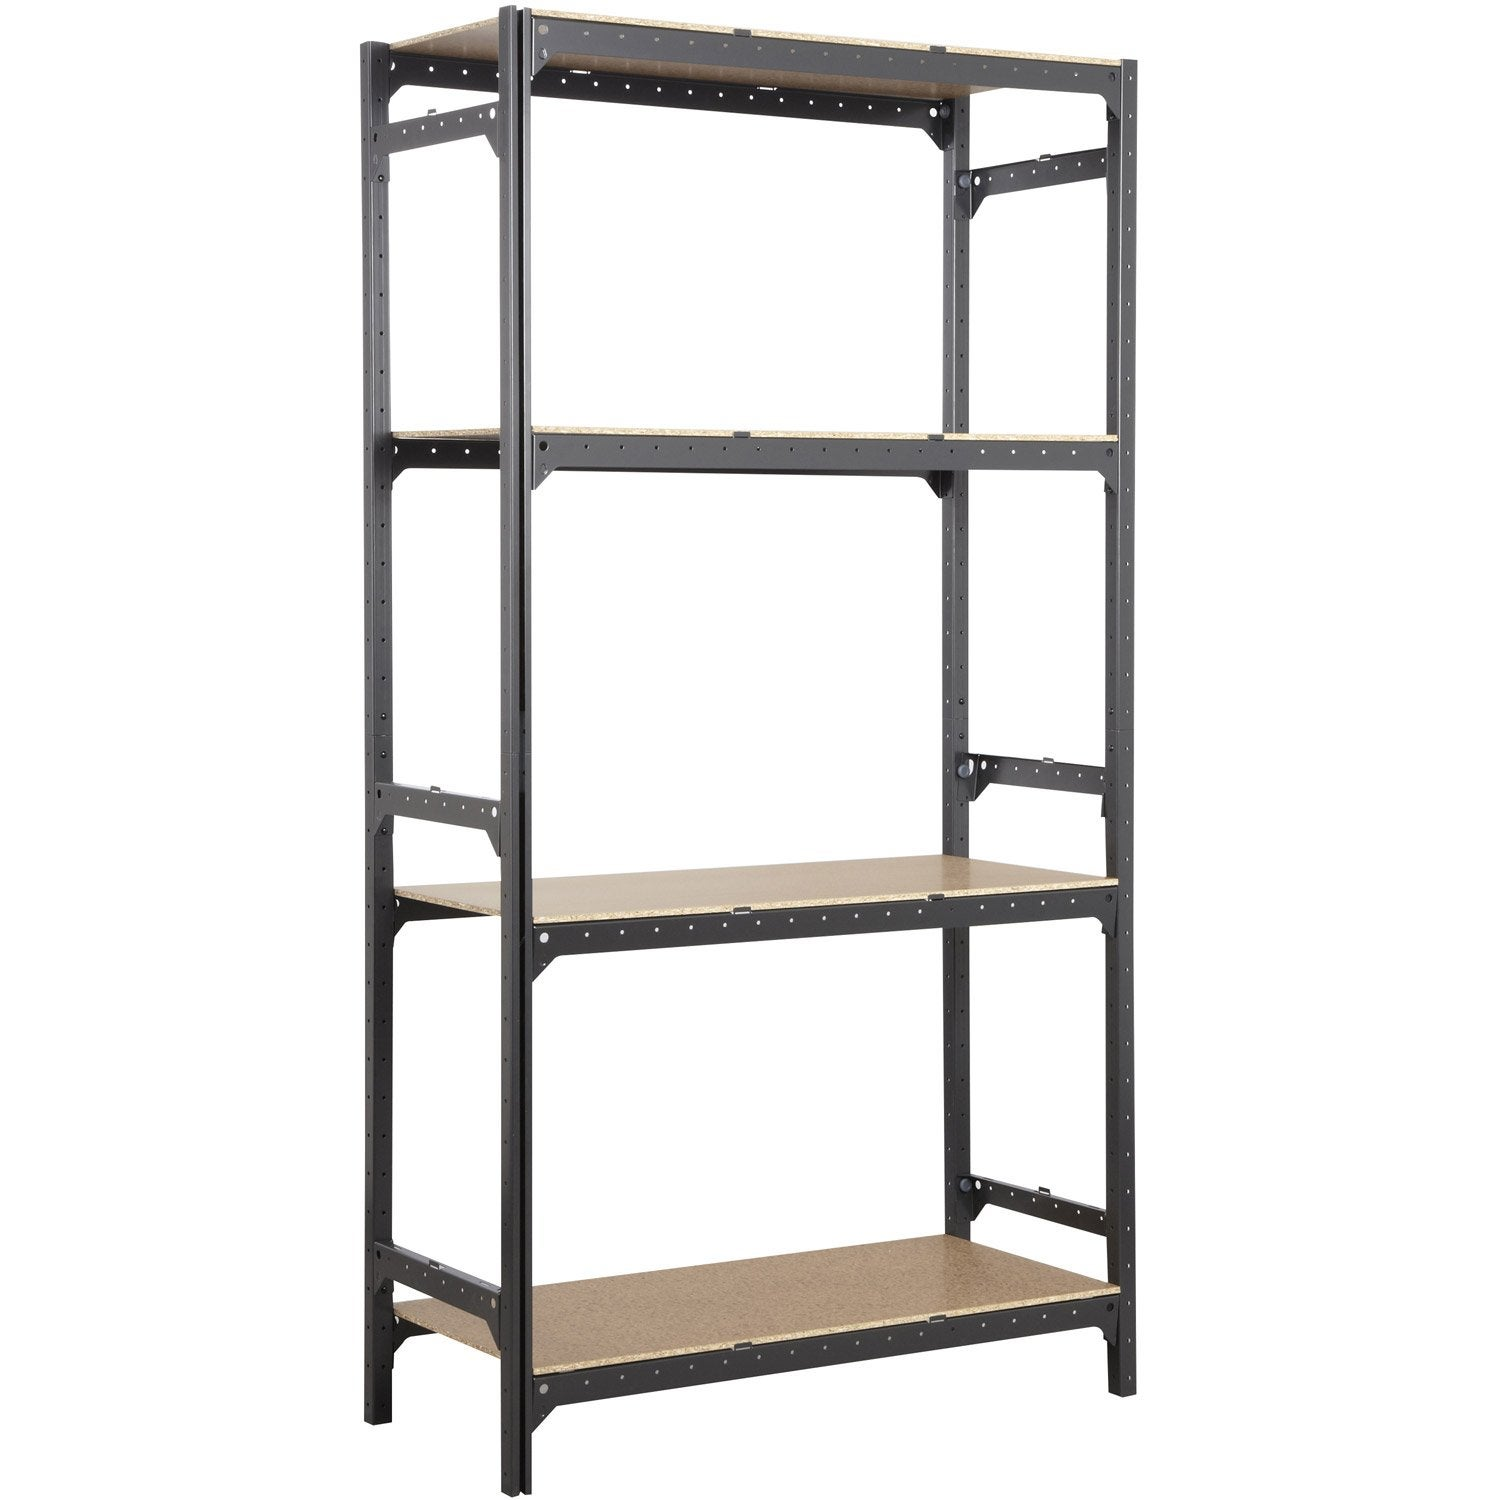 Pin etagere en fer forg 4 tablettes on pinterest - Etagere metal leroy merlin ...